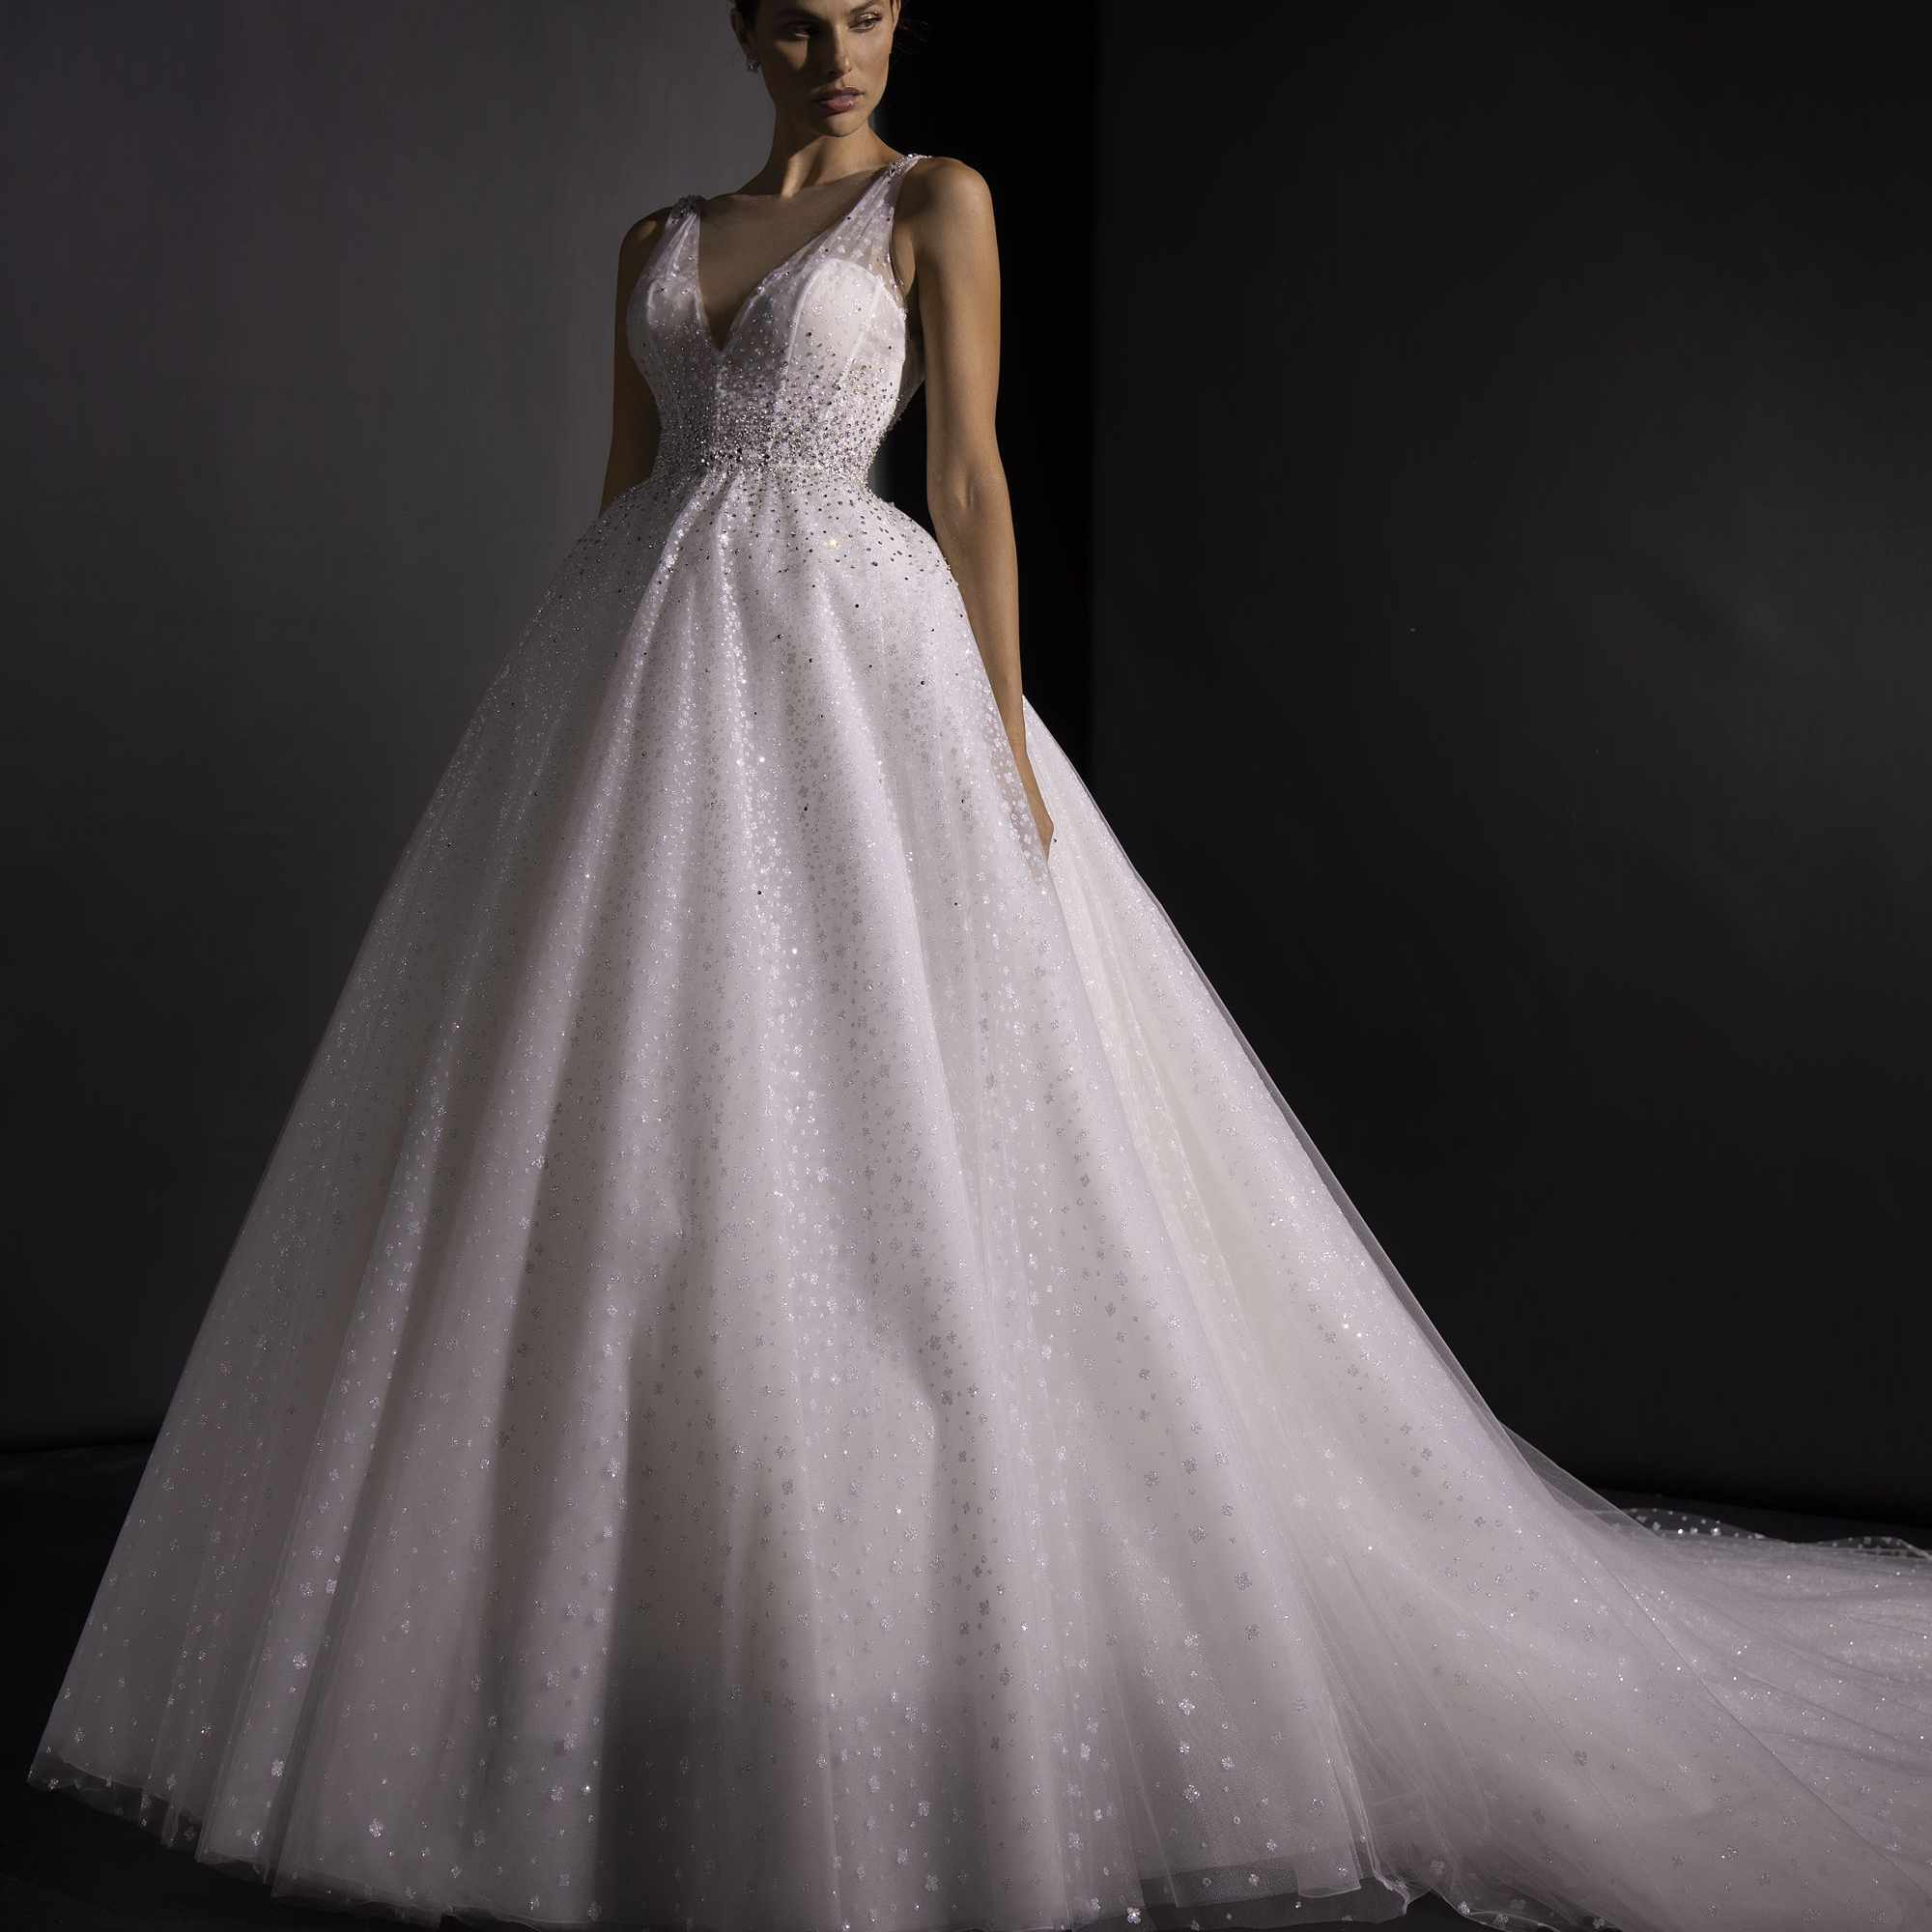 Model in sleeveless tulle ballgown with glitter and beading